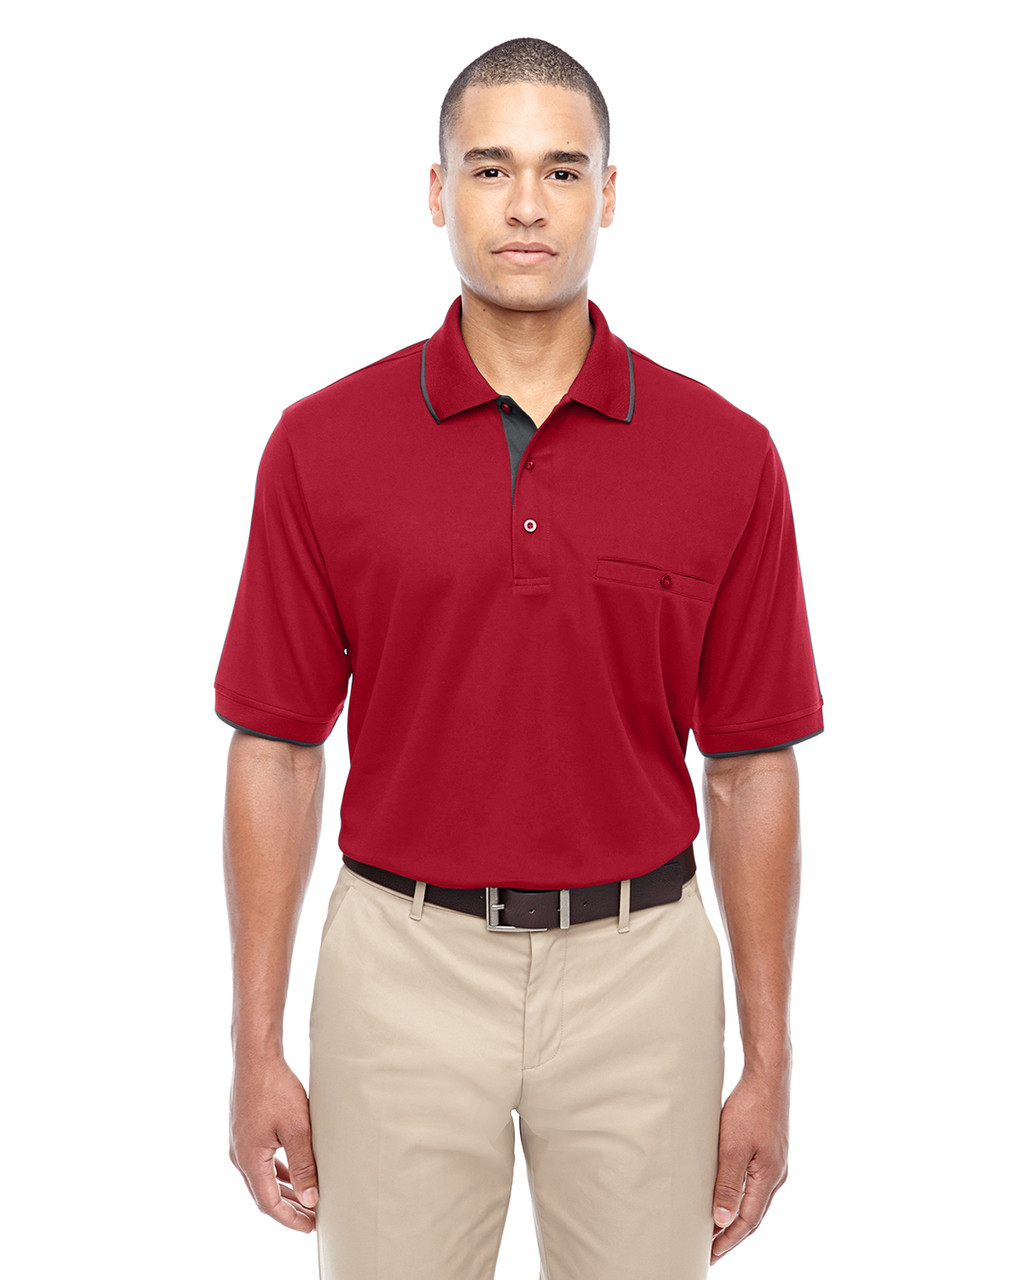 Classic Red 88222 Ash City - Core 365 Men's Motive Performance Pique Polo Shirt with Tipped Collar   Blankclothing.ca